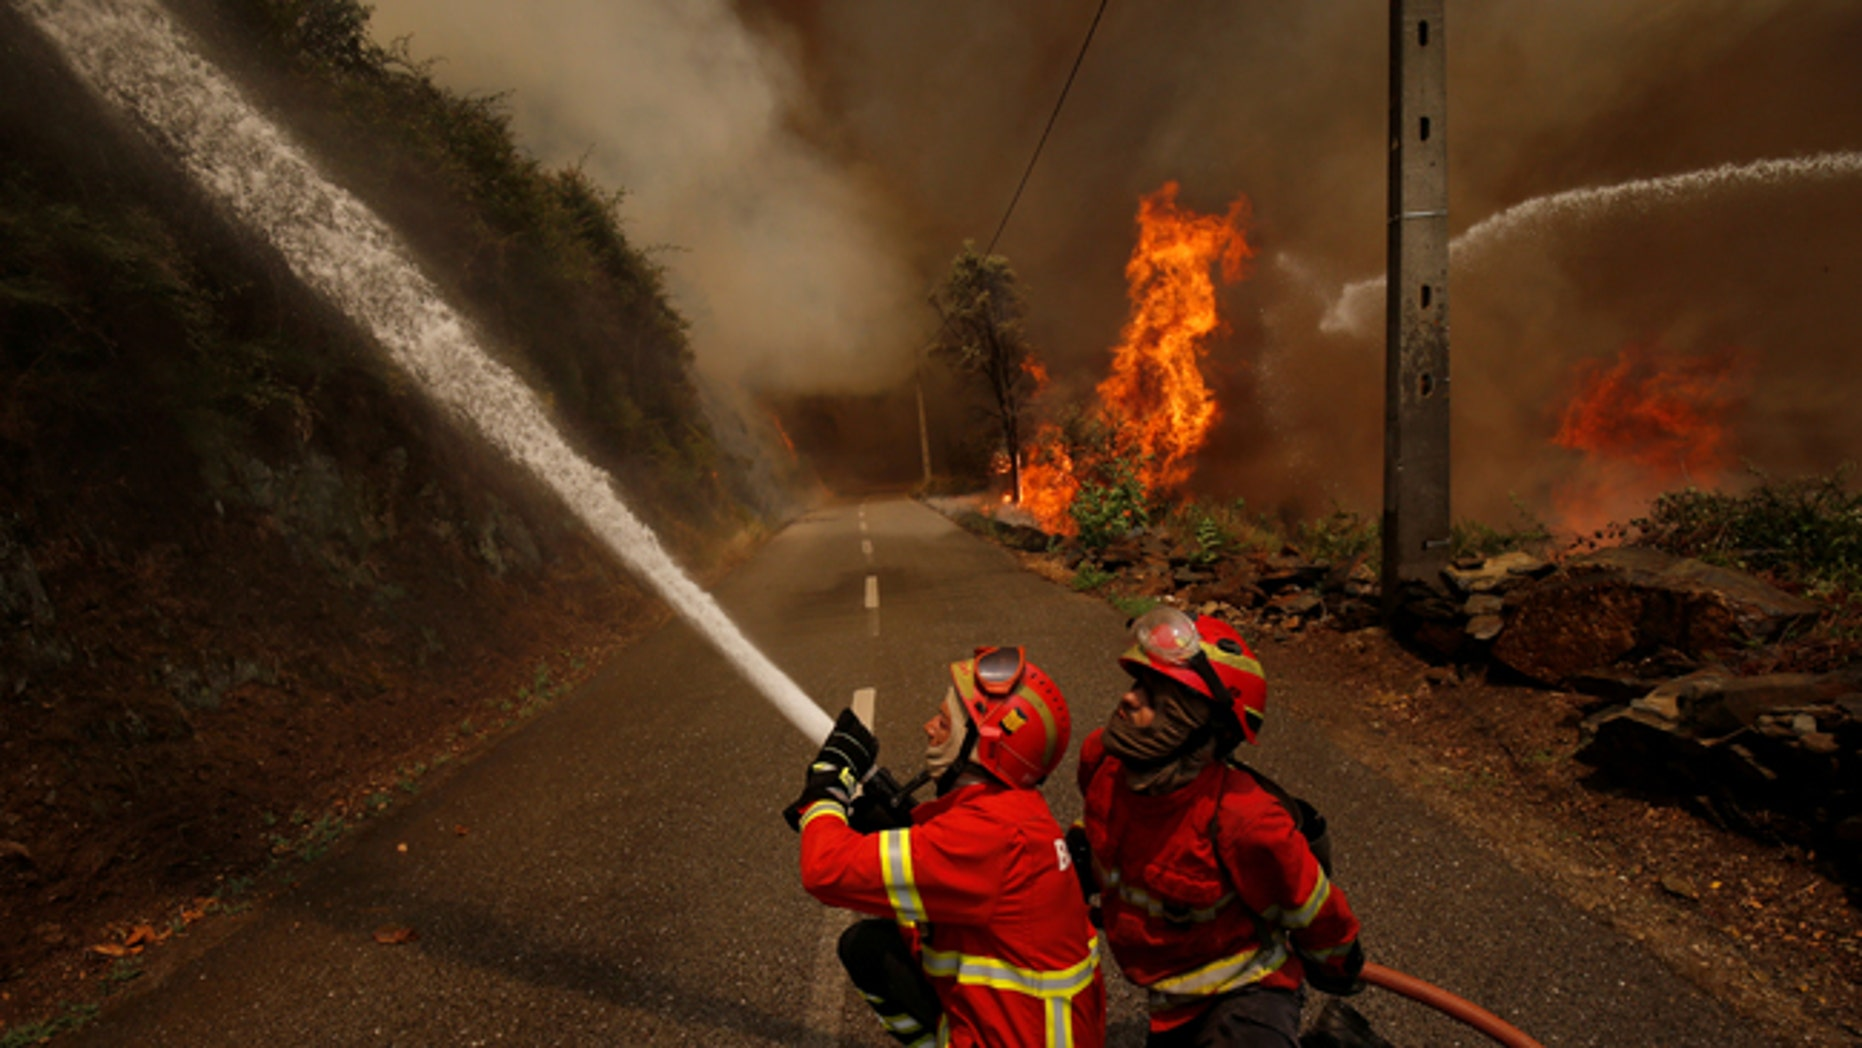 Firefighters work to put out a forest fire in the village of Sandinha, near Gois, Portugal, June 20, 2017. REUTERS/Rafael Marchante - RTS17VXR